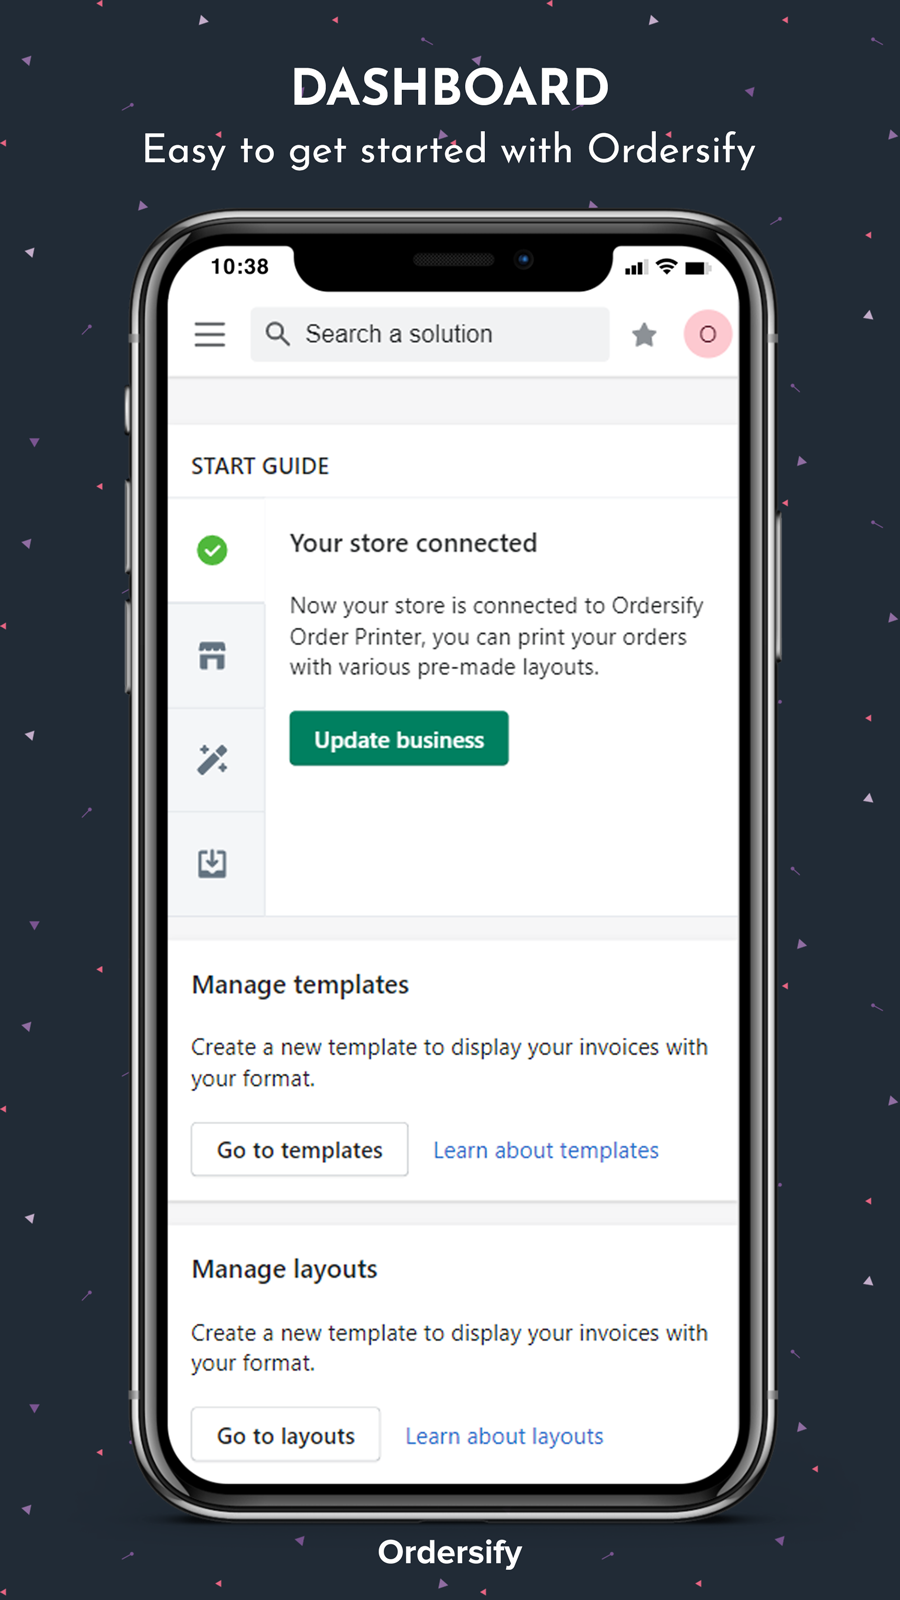 Easy to get started with Ordersify